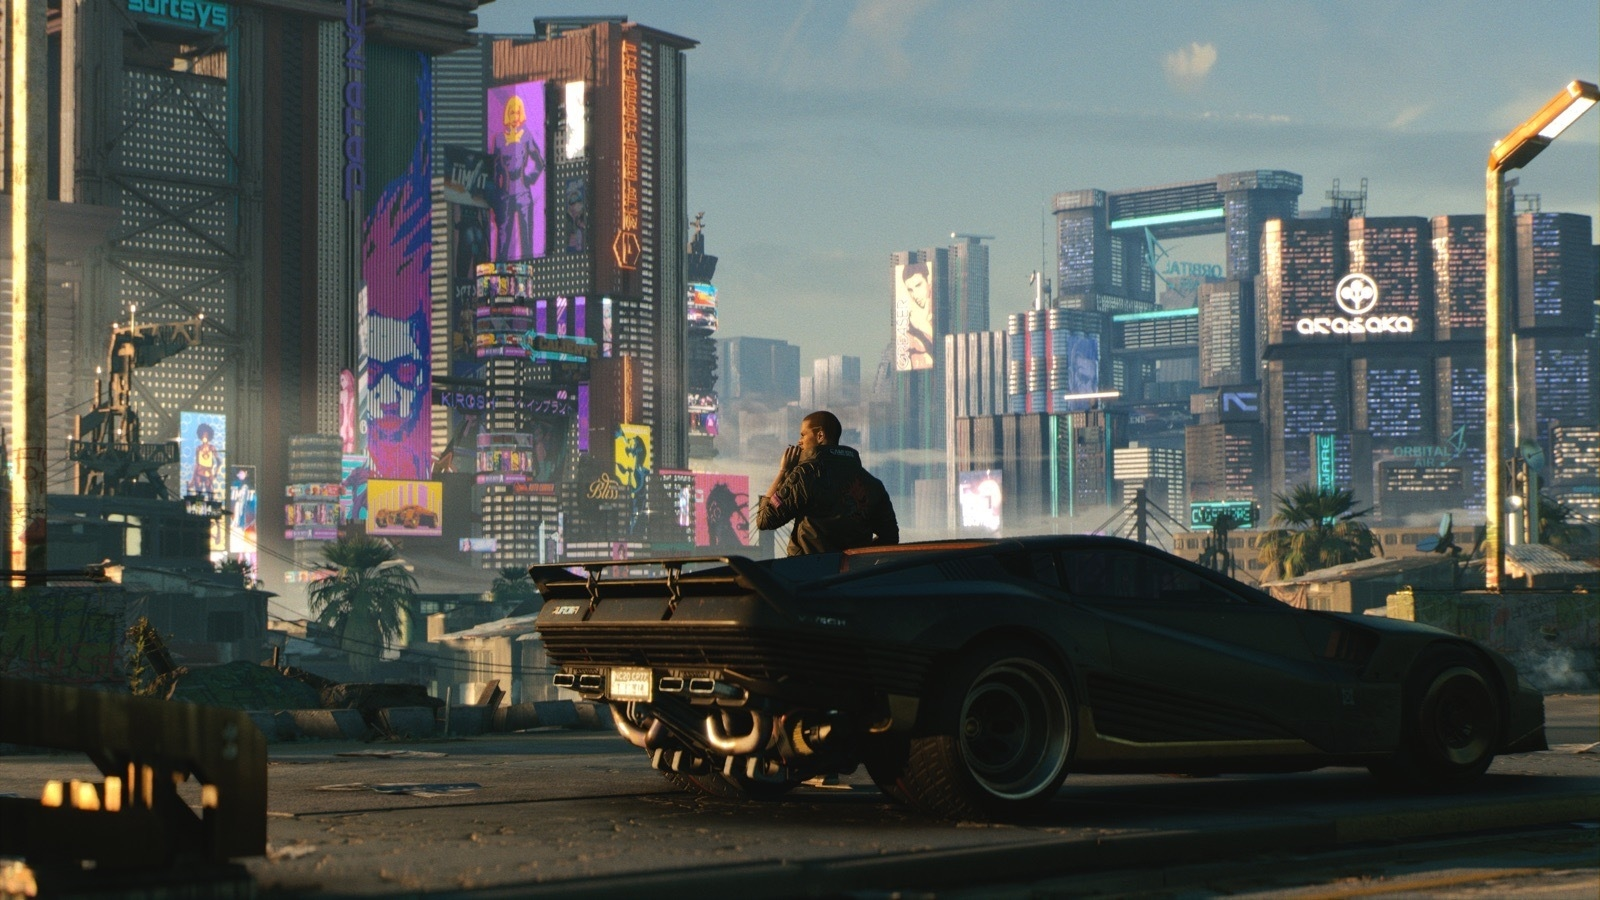 Bloomberg: 'Cyberpunk 2077' full development didn't start until 2016 | DeviceDaily.com